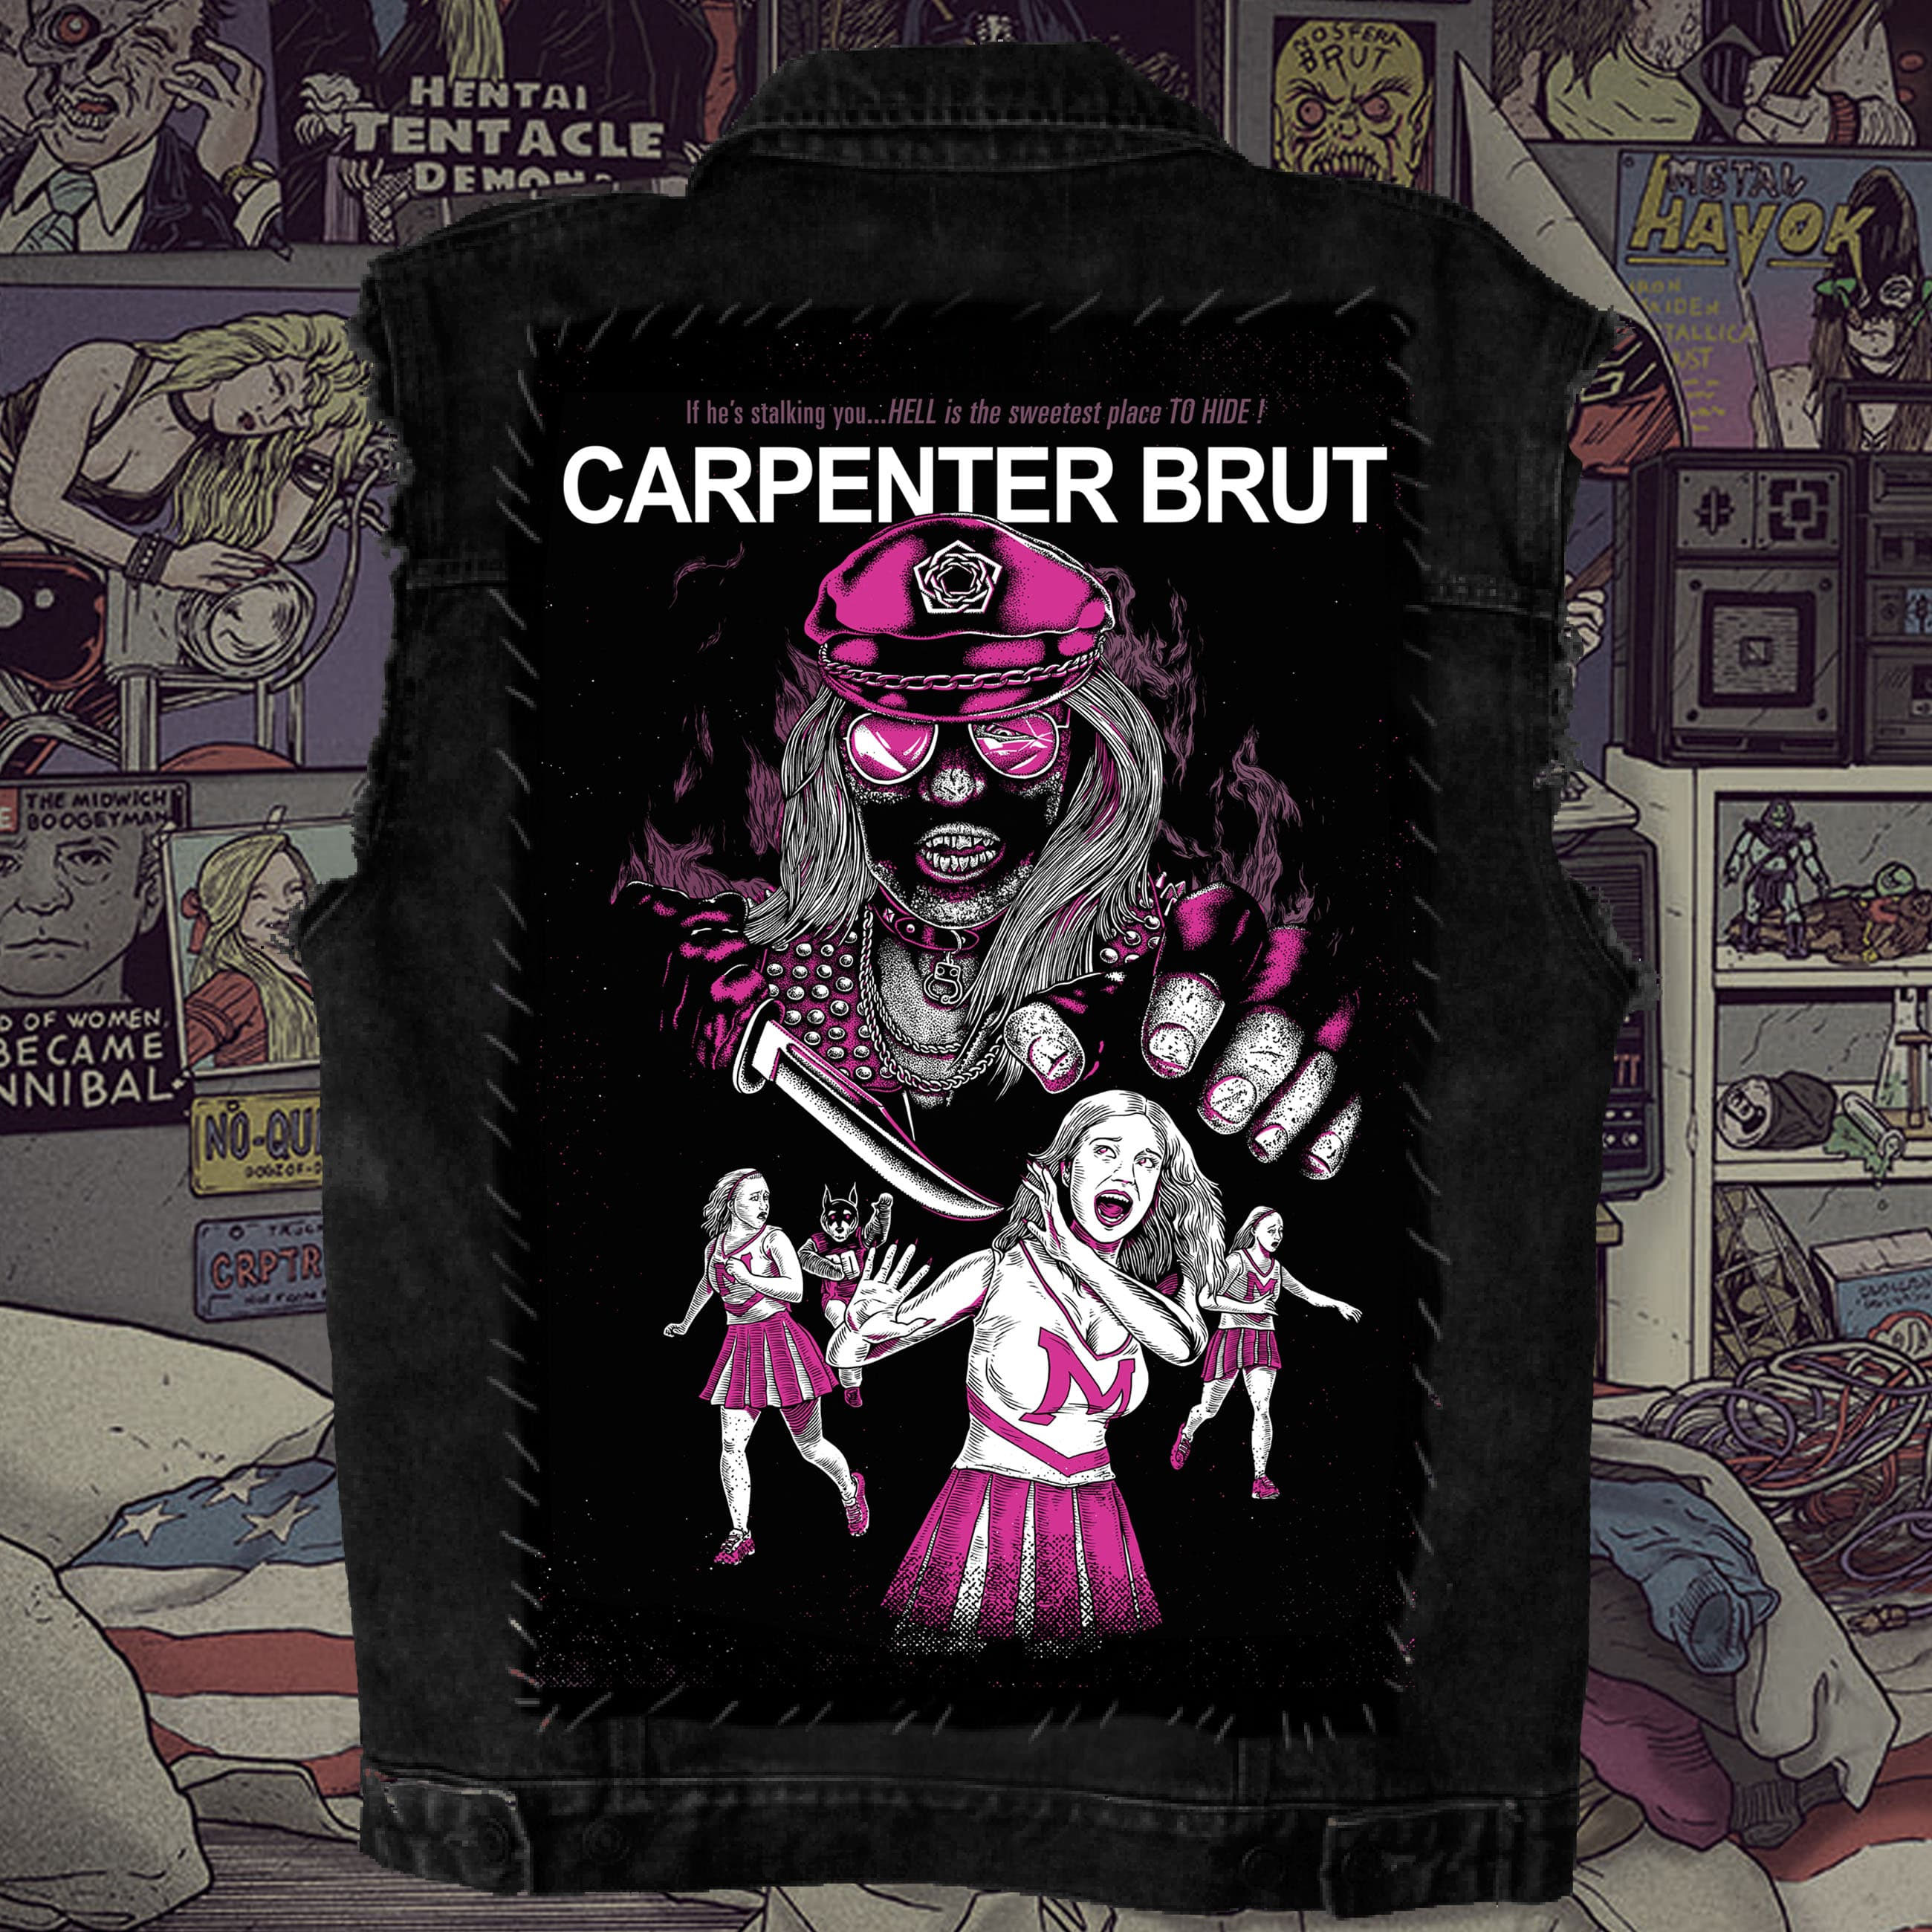 † Leather Teeth † Back Patch †